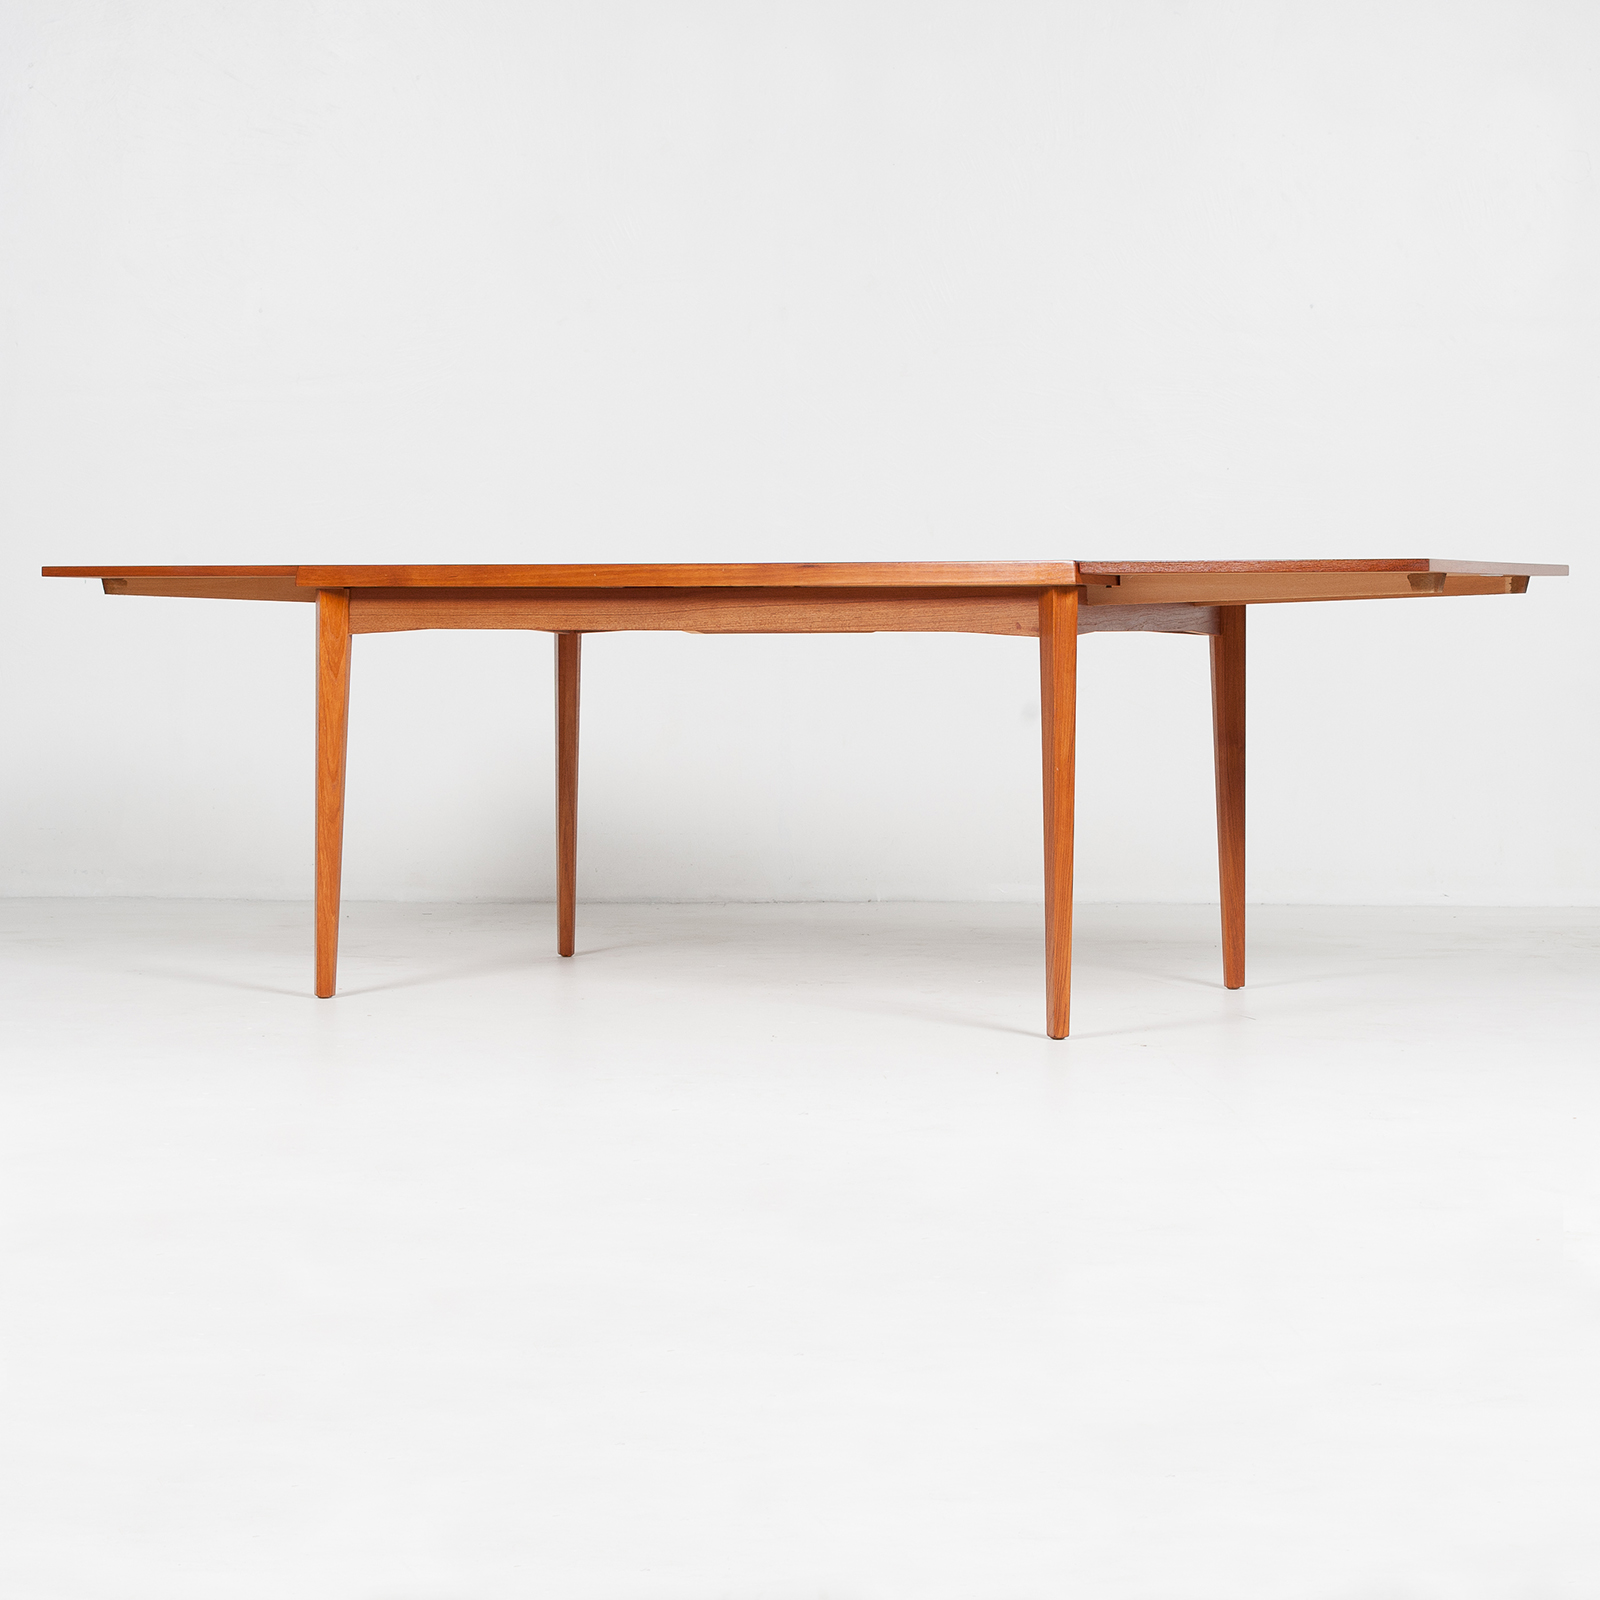 Dining Table In Teak With Concealed Top, 1960s, Denmark26